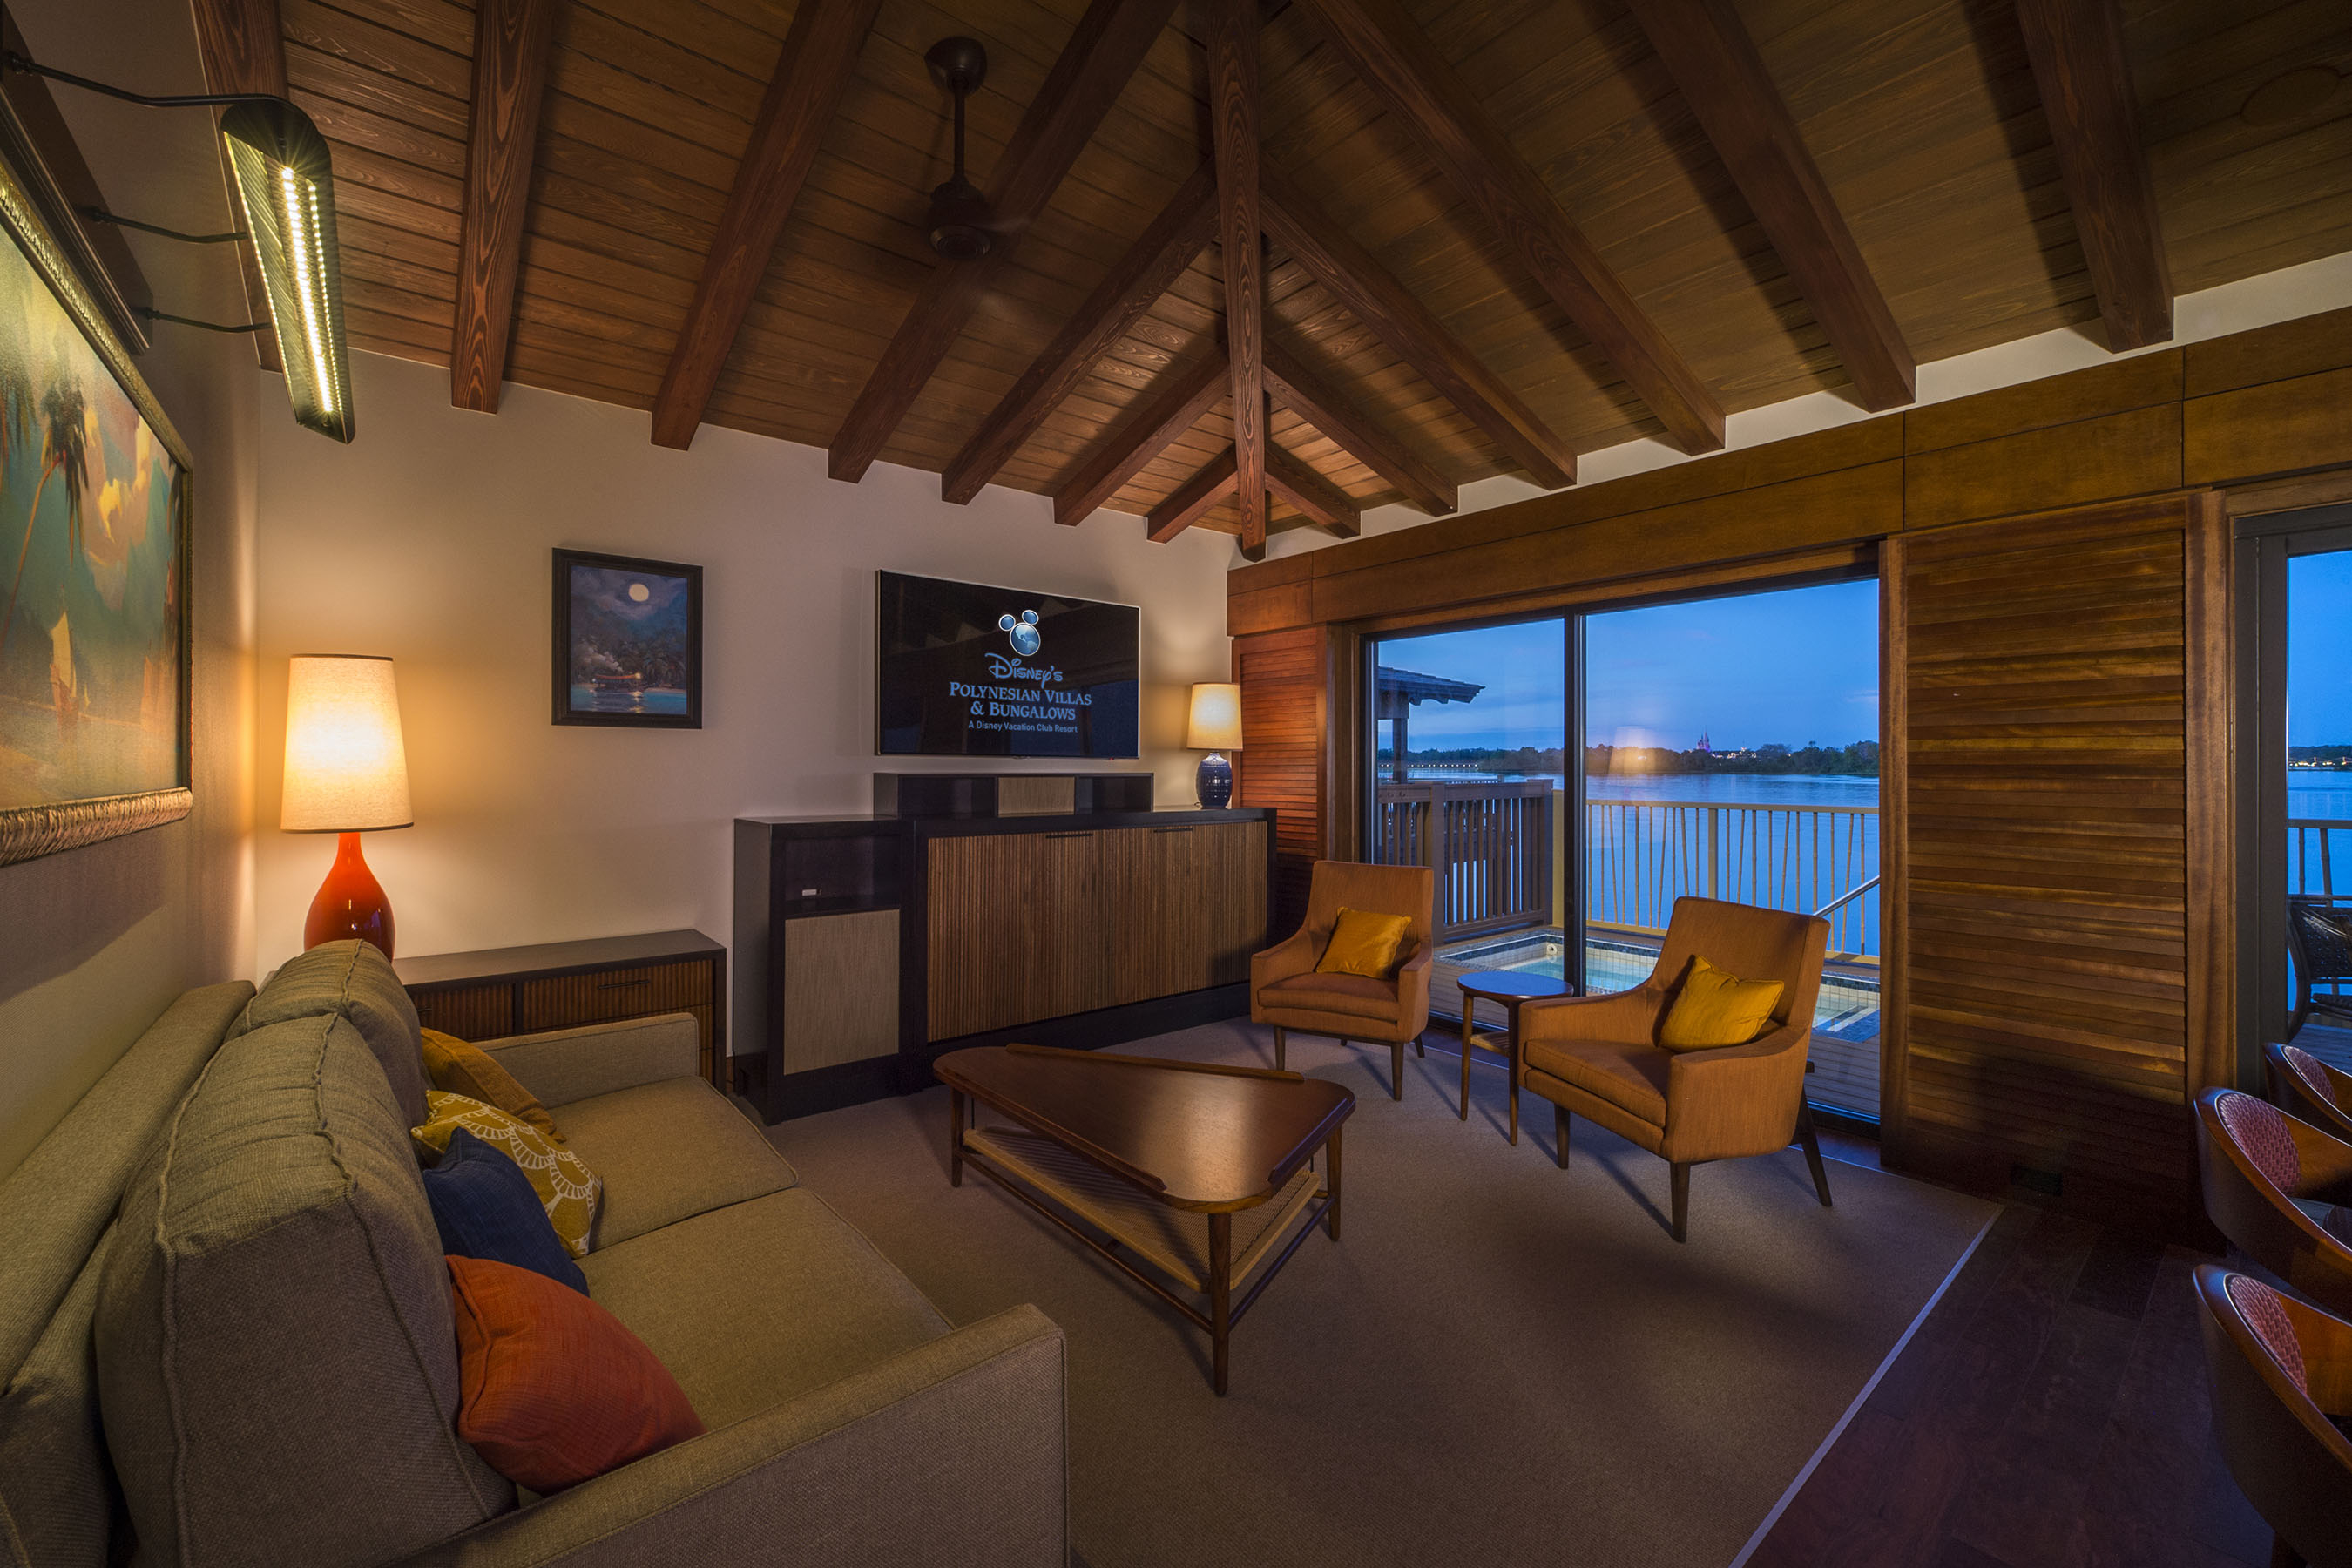 Modern Photo Tour Of The Bora Bora Bungalows At Disney's Polynesian Village in Beautiful Disney Polynesian Resort Bungalows